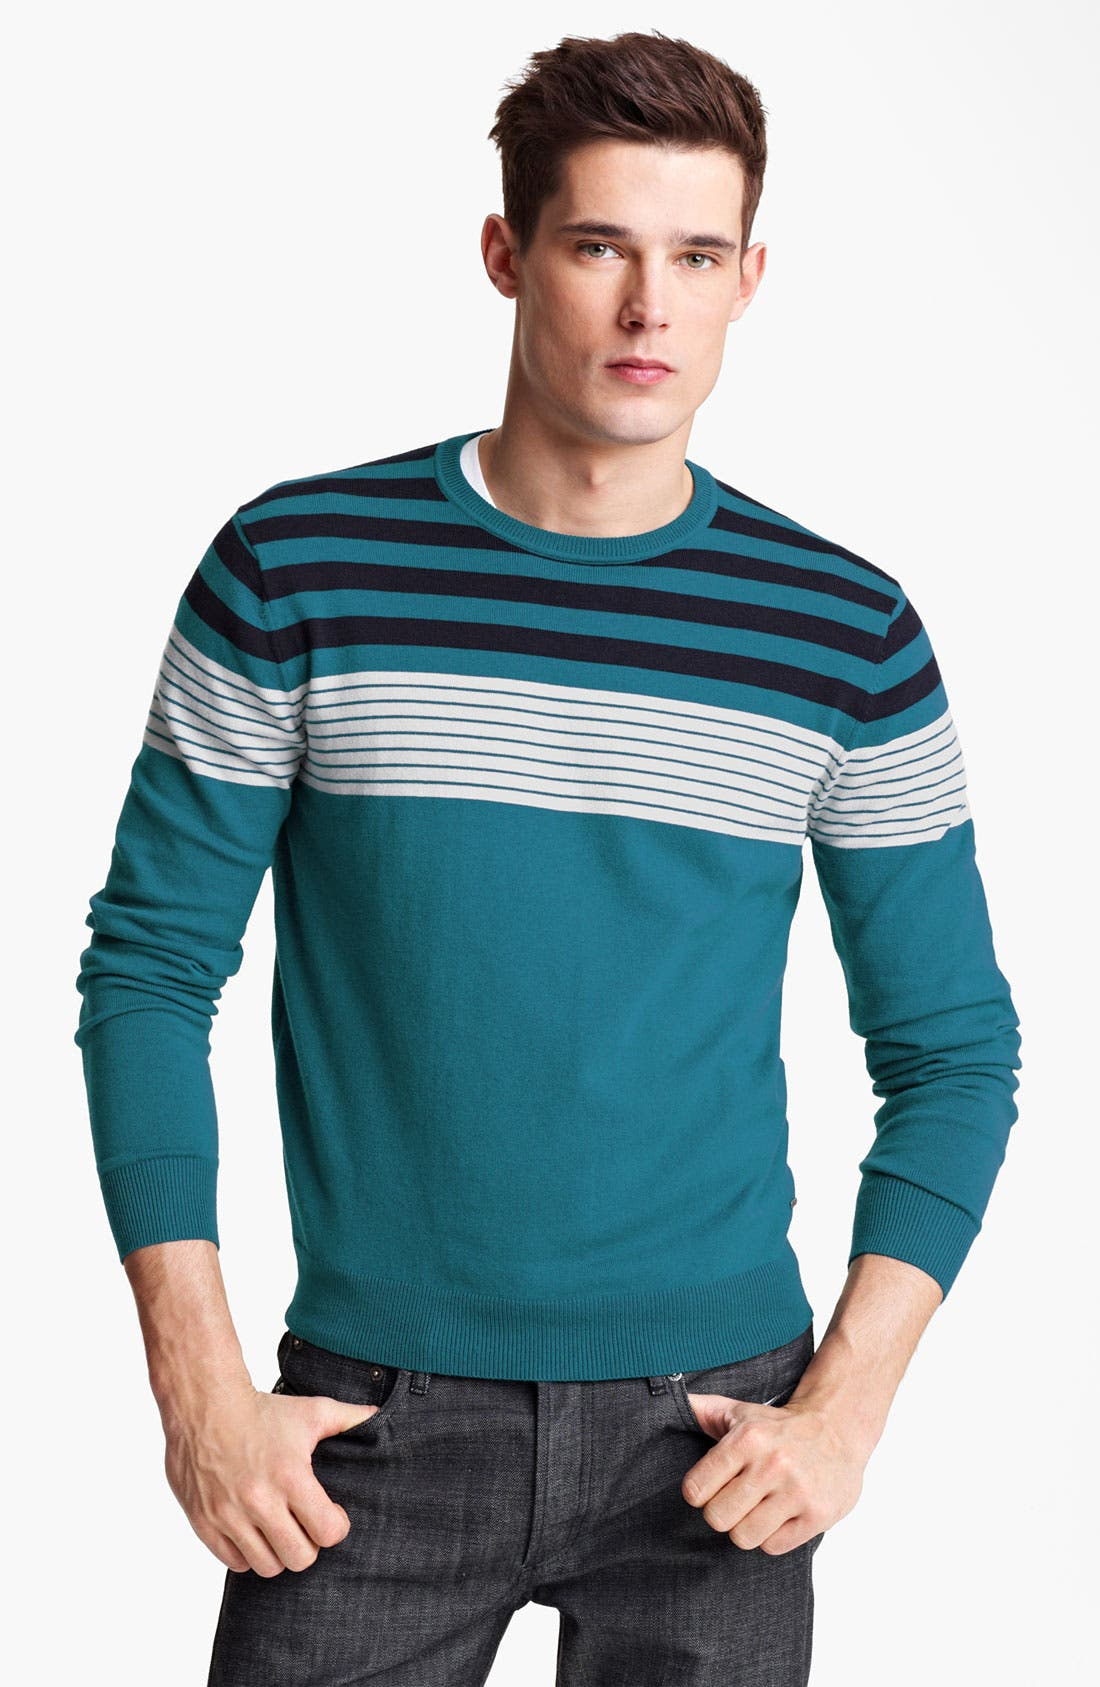 Alternate Image 1 Selected - Zegna Sport Crewneck Sweater